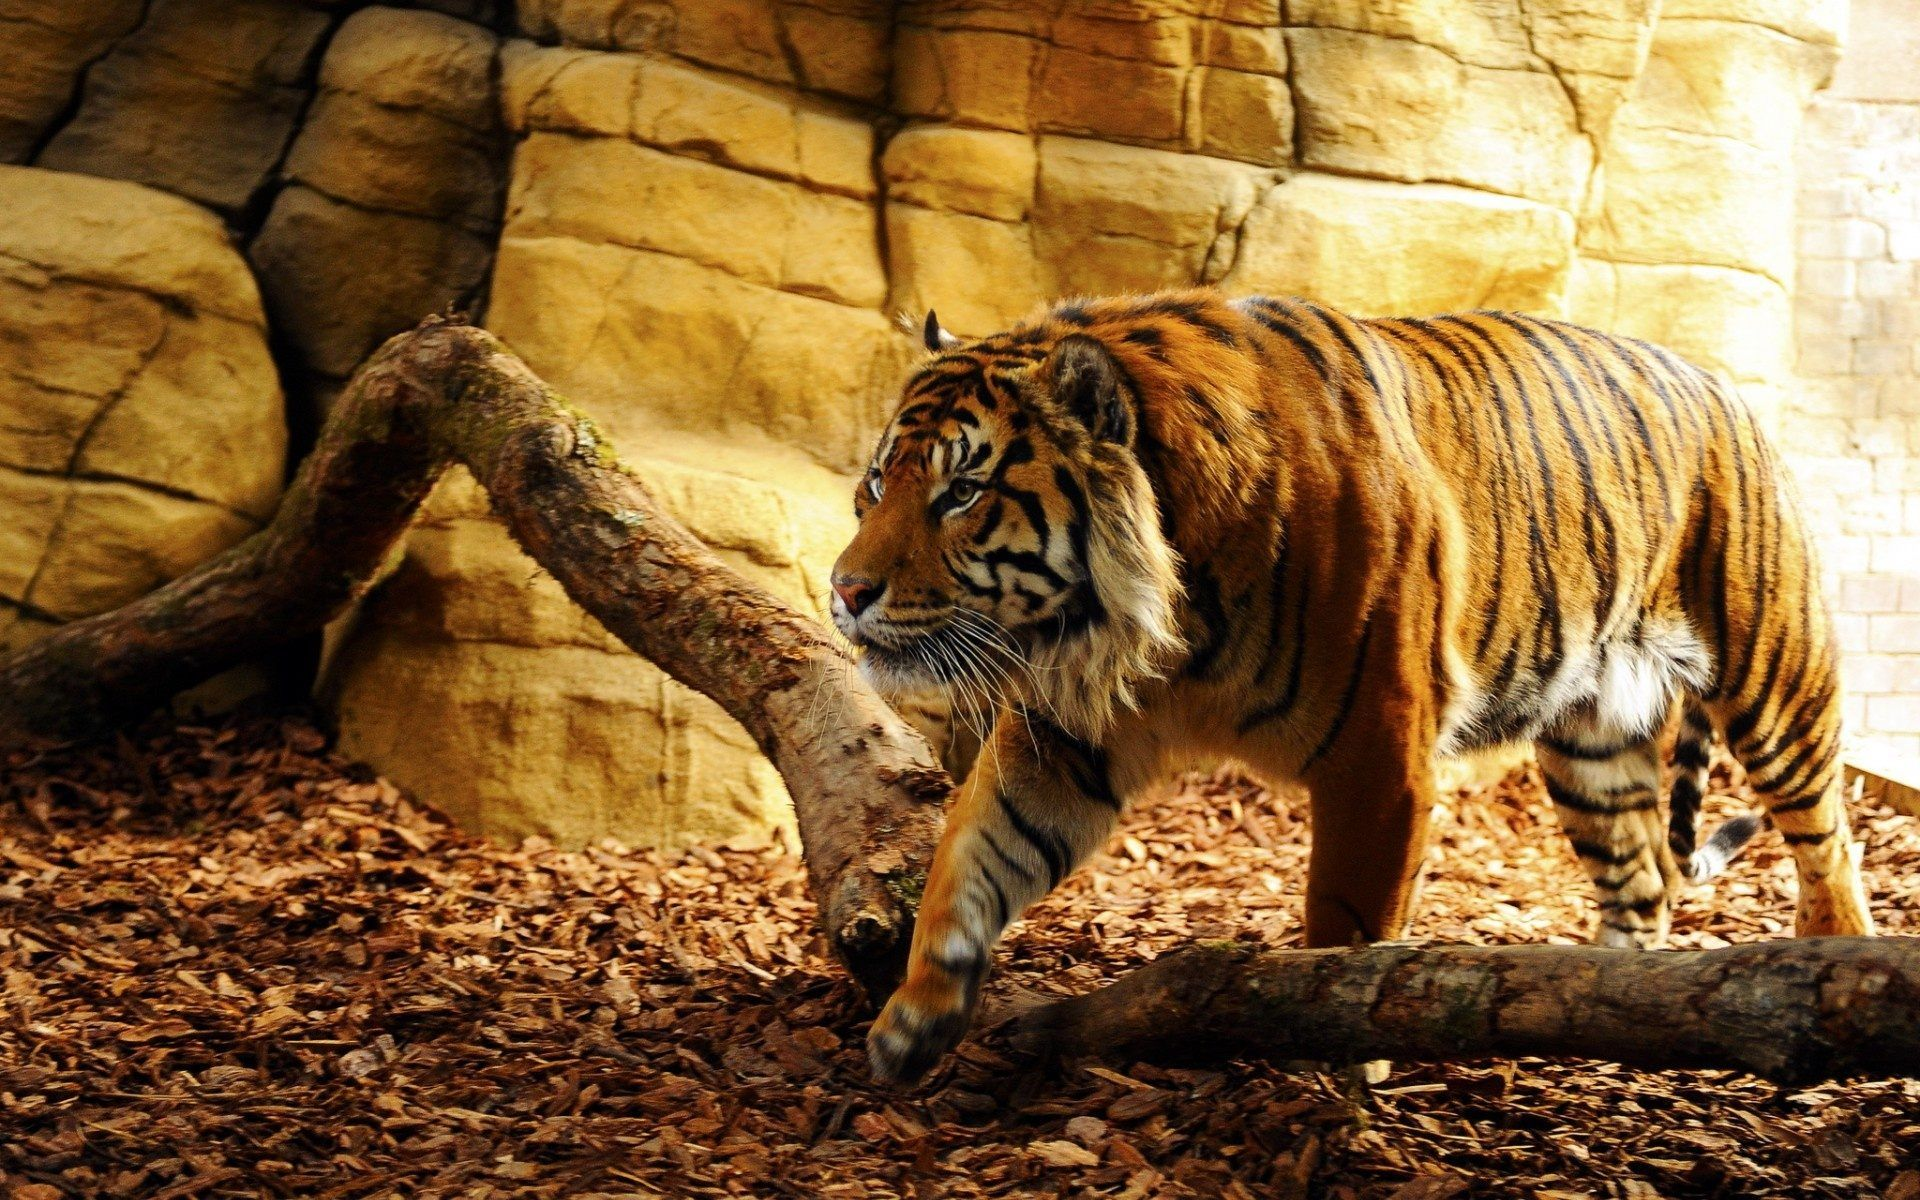 big tiger wallpaper hd download for desktop of wild tiger | fondos